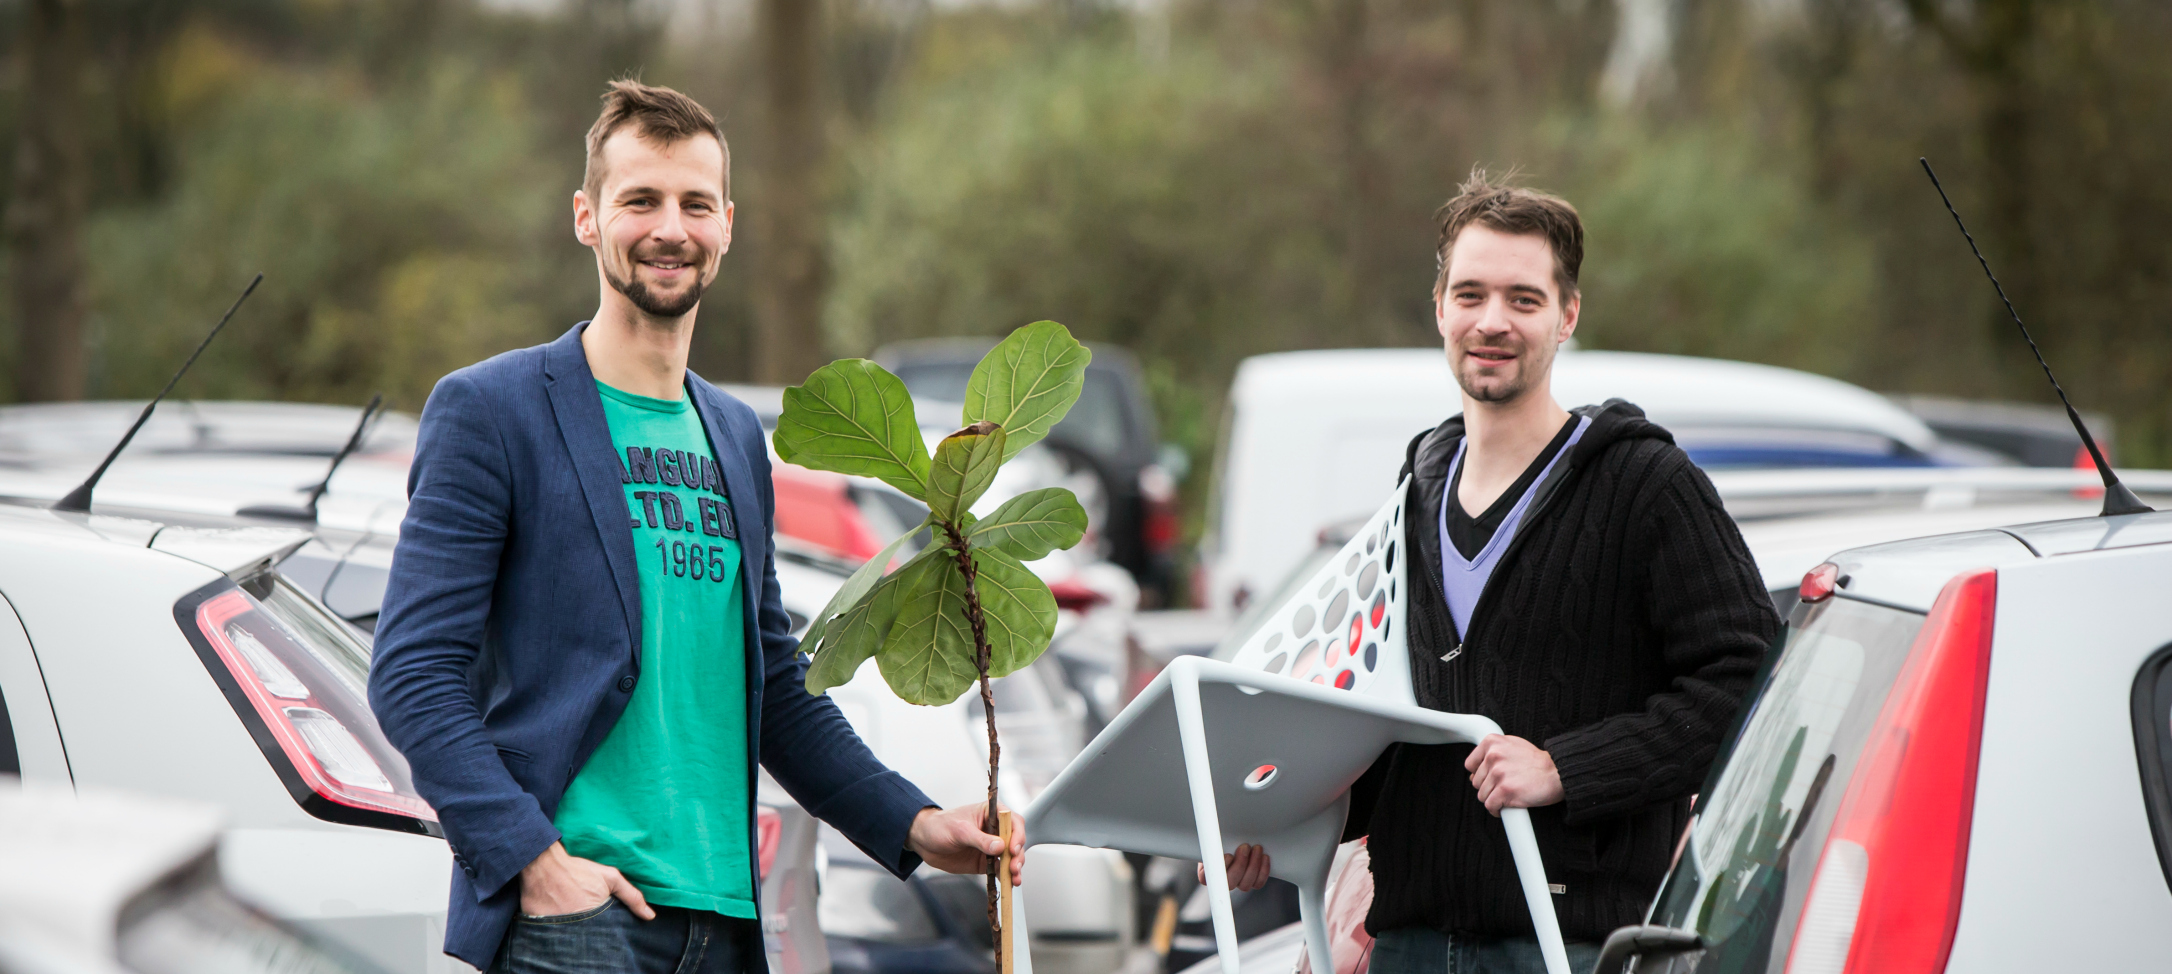 Social delivery startup PickThisUp secures seed funding in a six-day deal